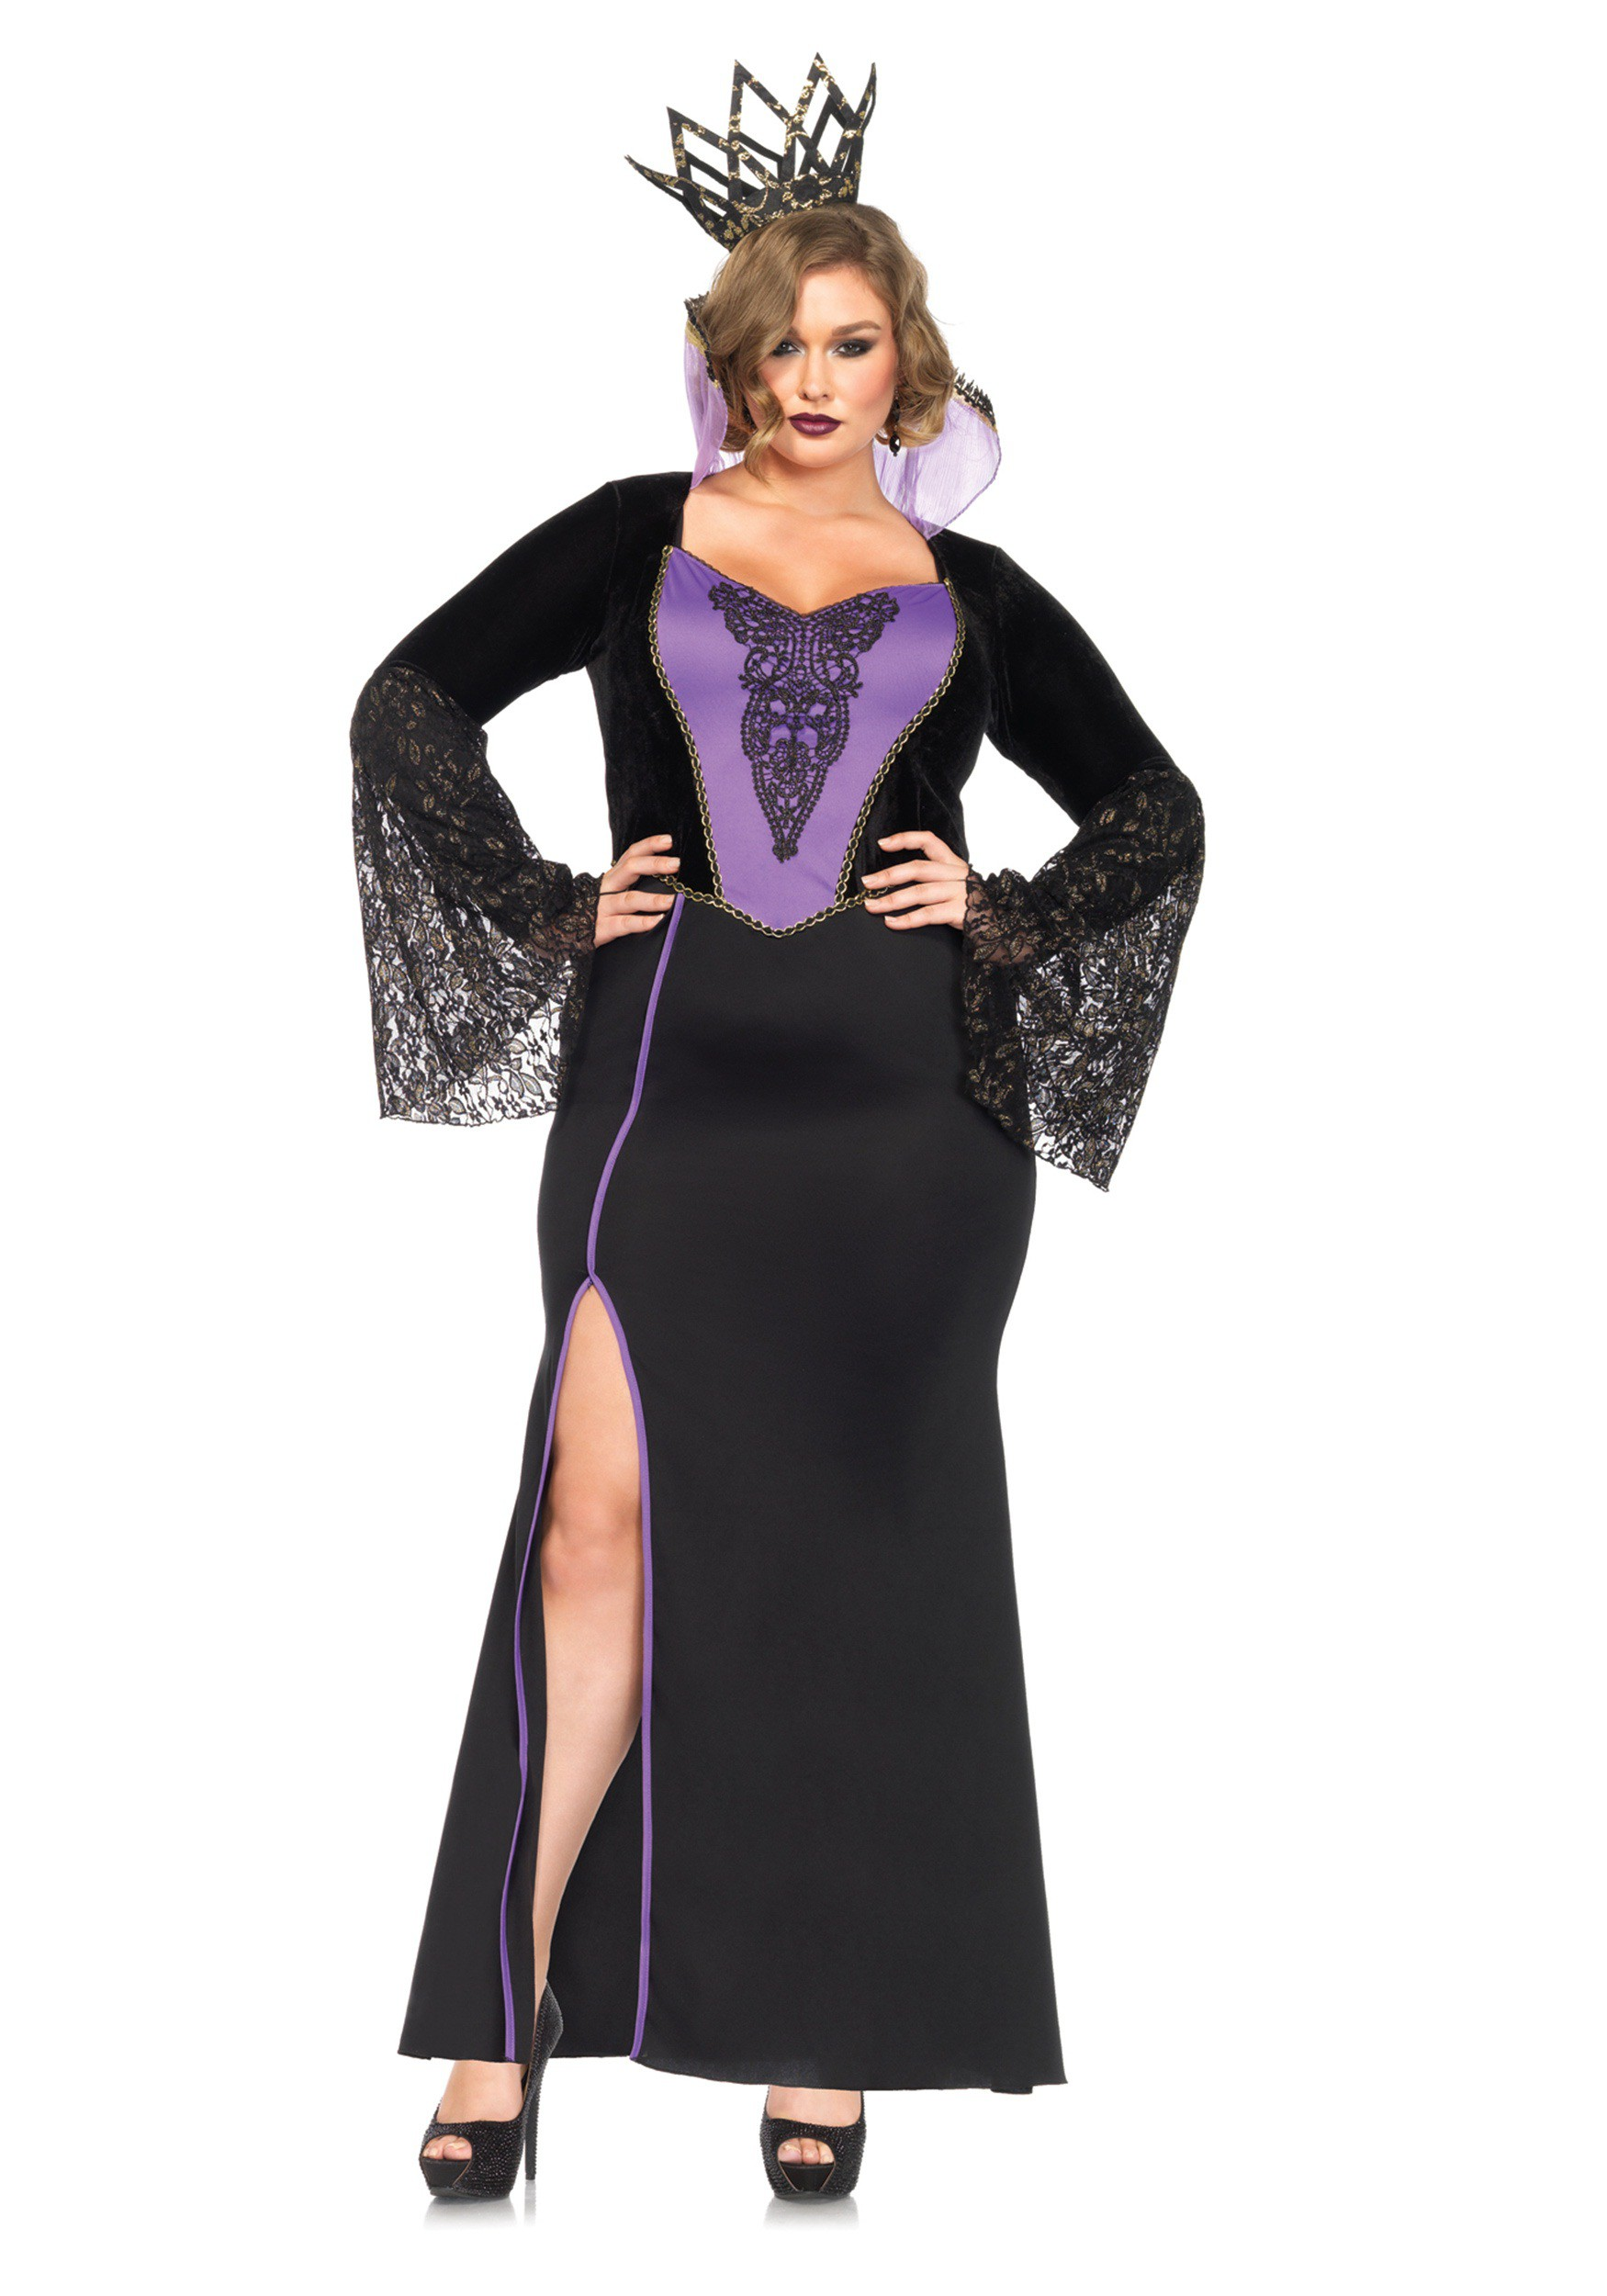 Plus size adult queen costume